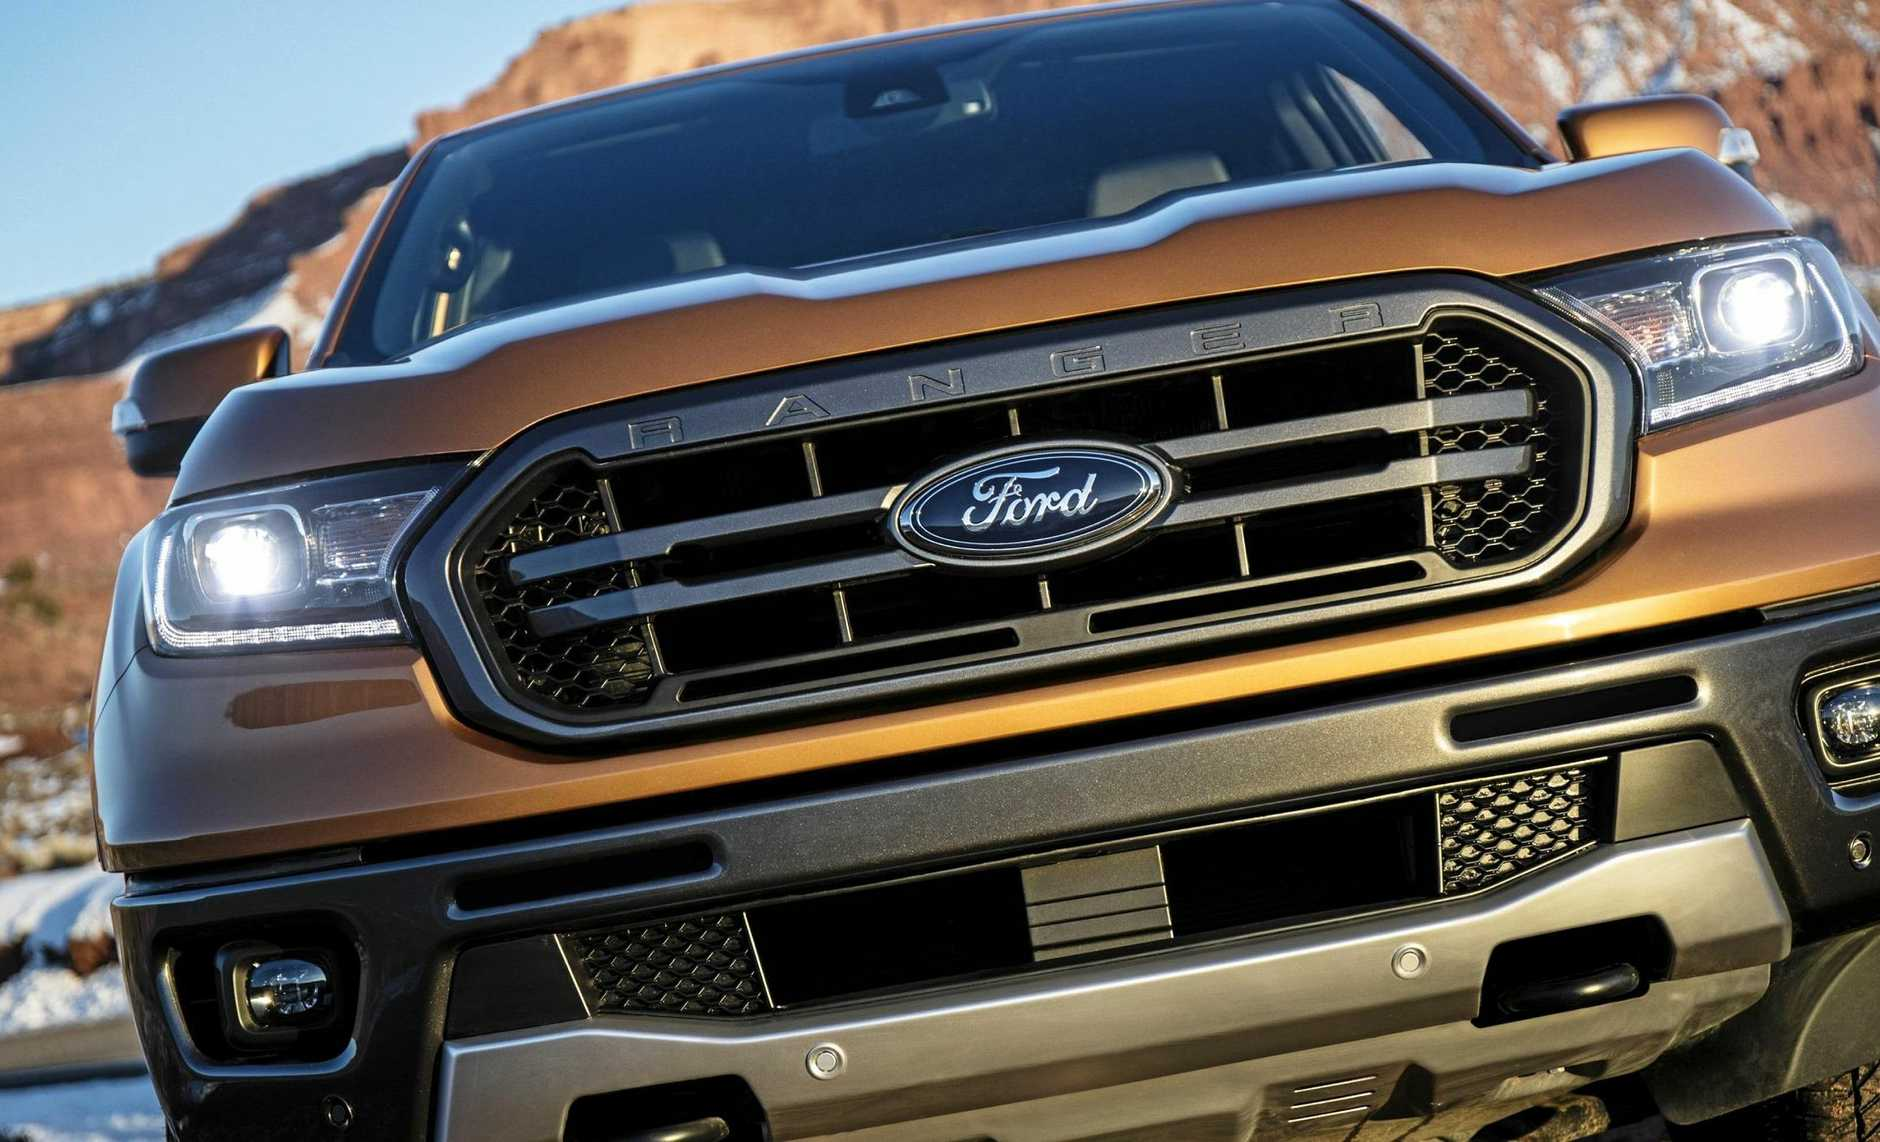 The Ford Ranger has just been revealed in Detroit ahead of the North American International Auto Show.